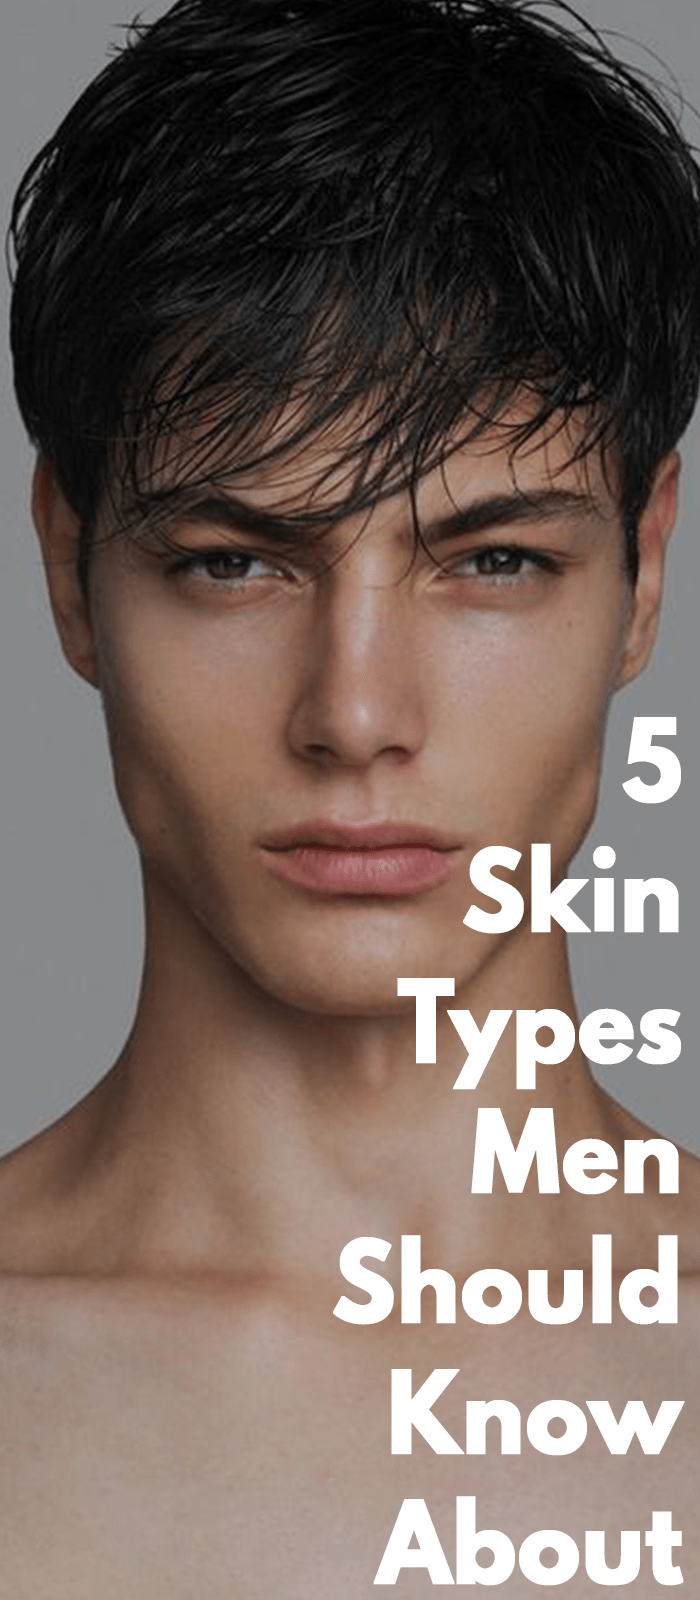 How To Determine Your Skin Type is part of Skin types, Skin, Clear skin men, Clear skin routine, Clear skin tips, Sensitive skin care regimen - It is very important to know your skin type before investing in skin care products as wrong products can harm the skin and also lead to many skin problems